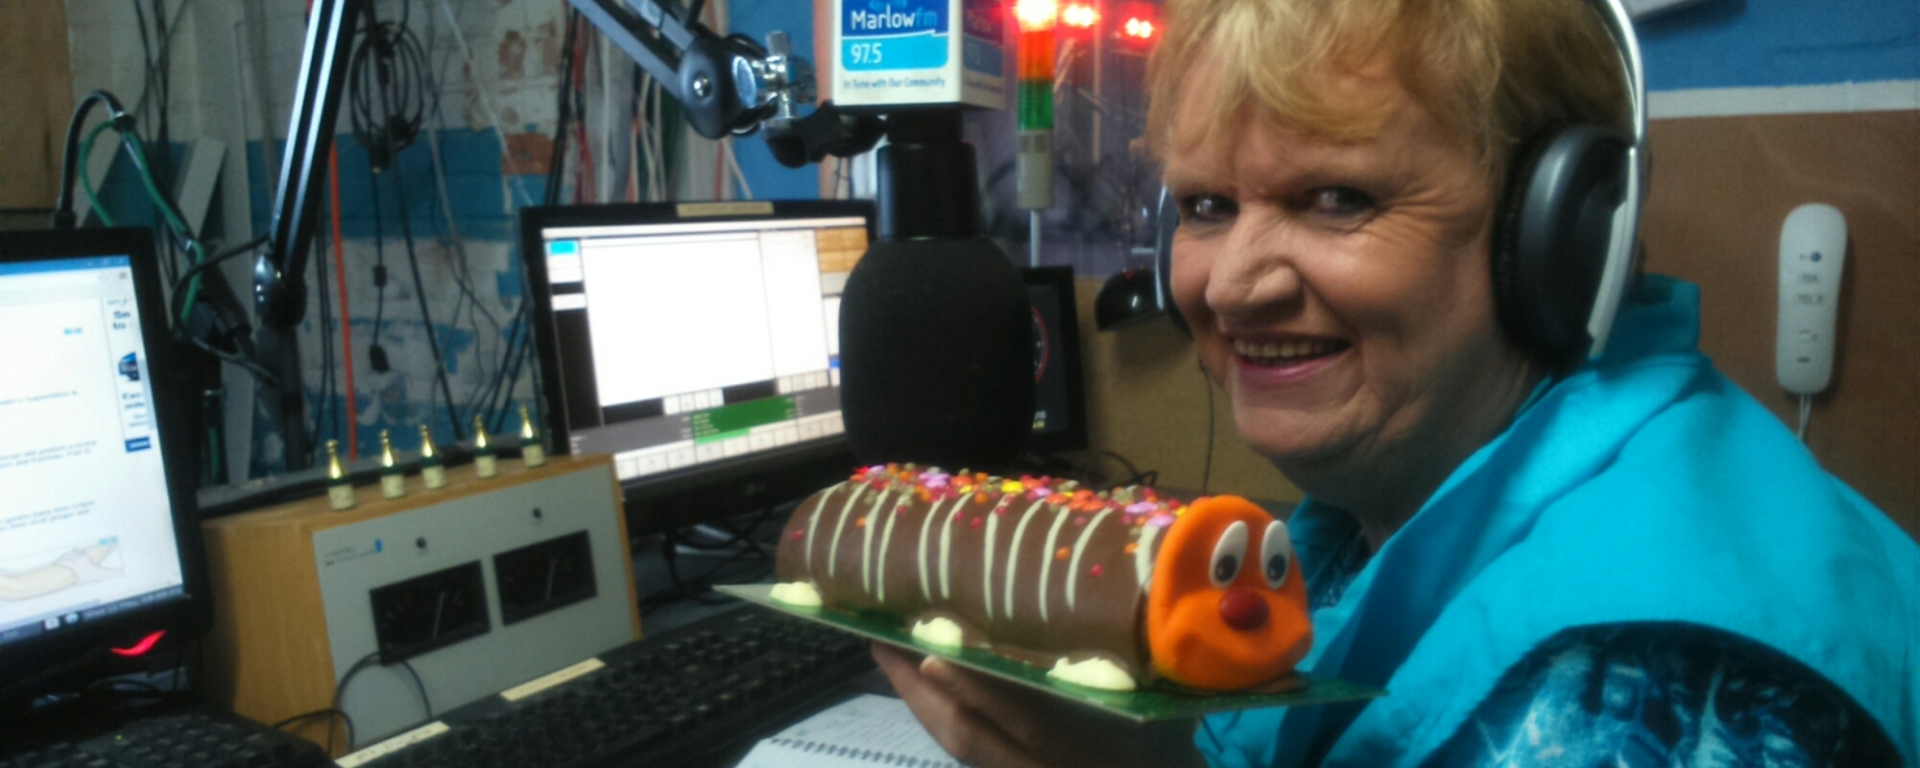 mary flavelle caterpilla marlowfm